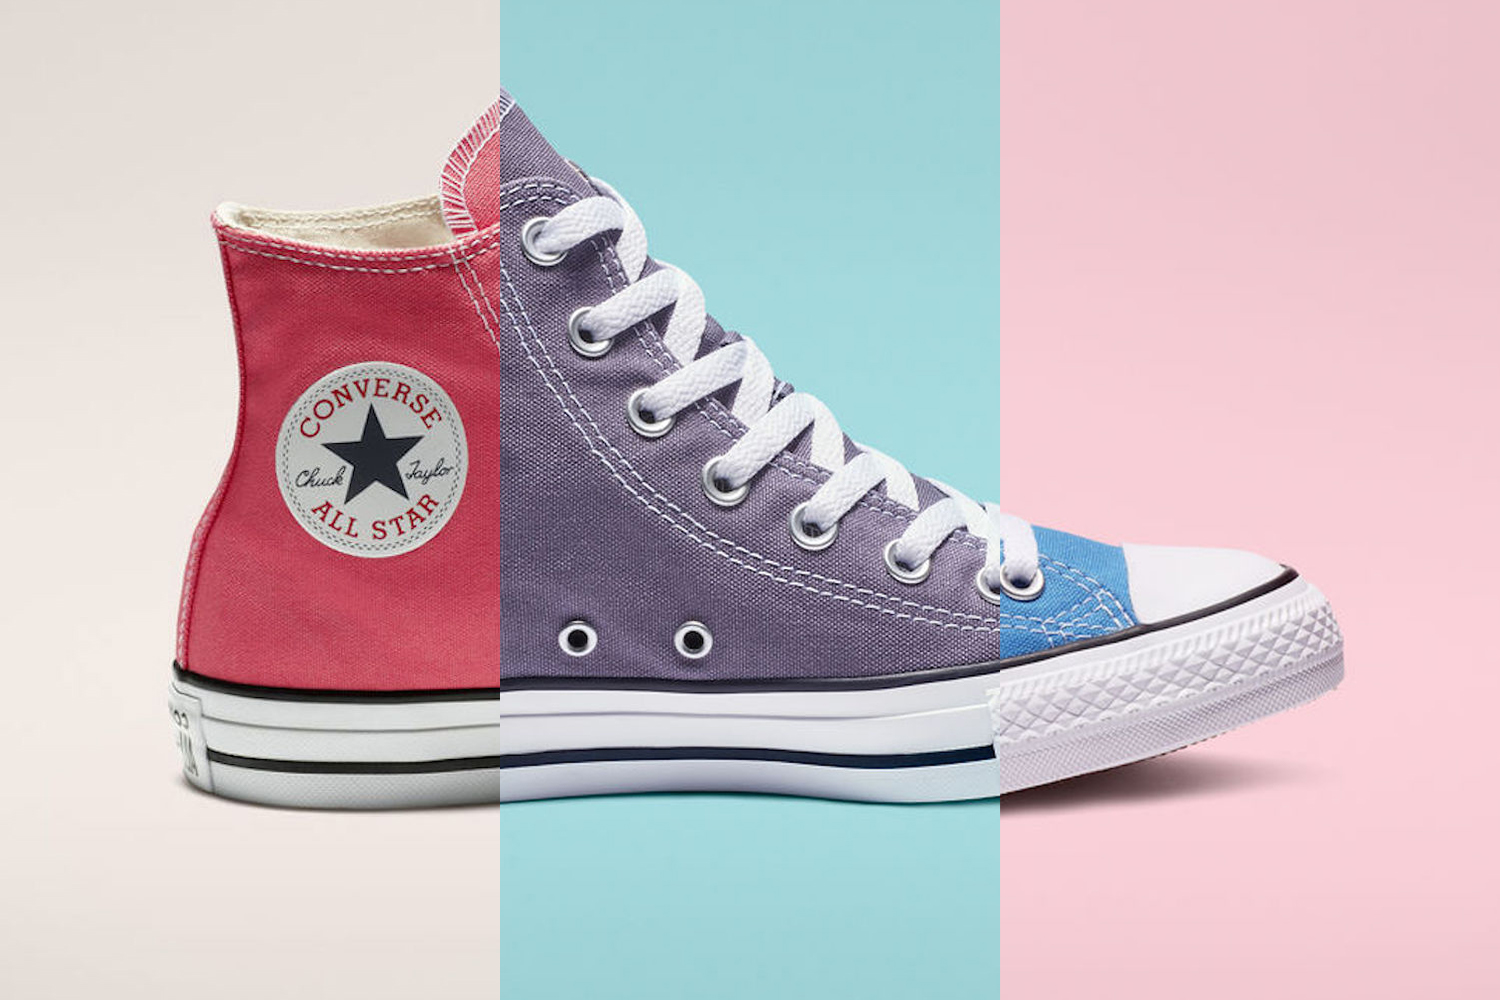 Converse Cut Prices on Over a Hundred Sneakers to Just $25